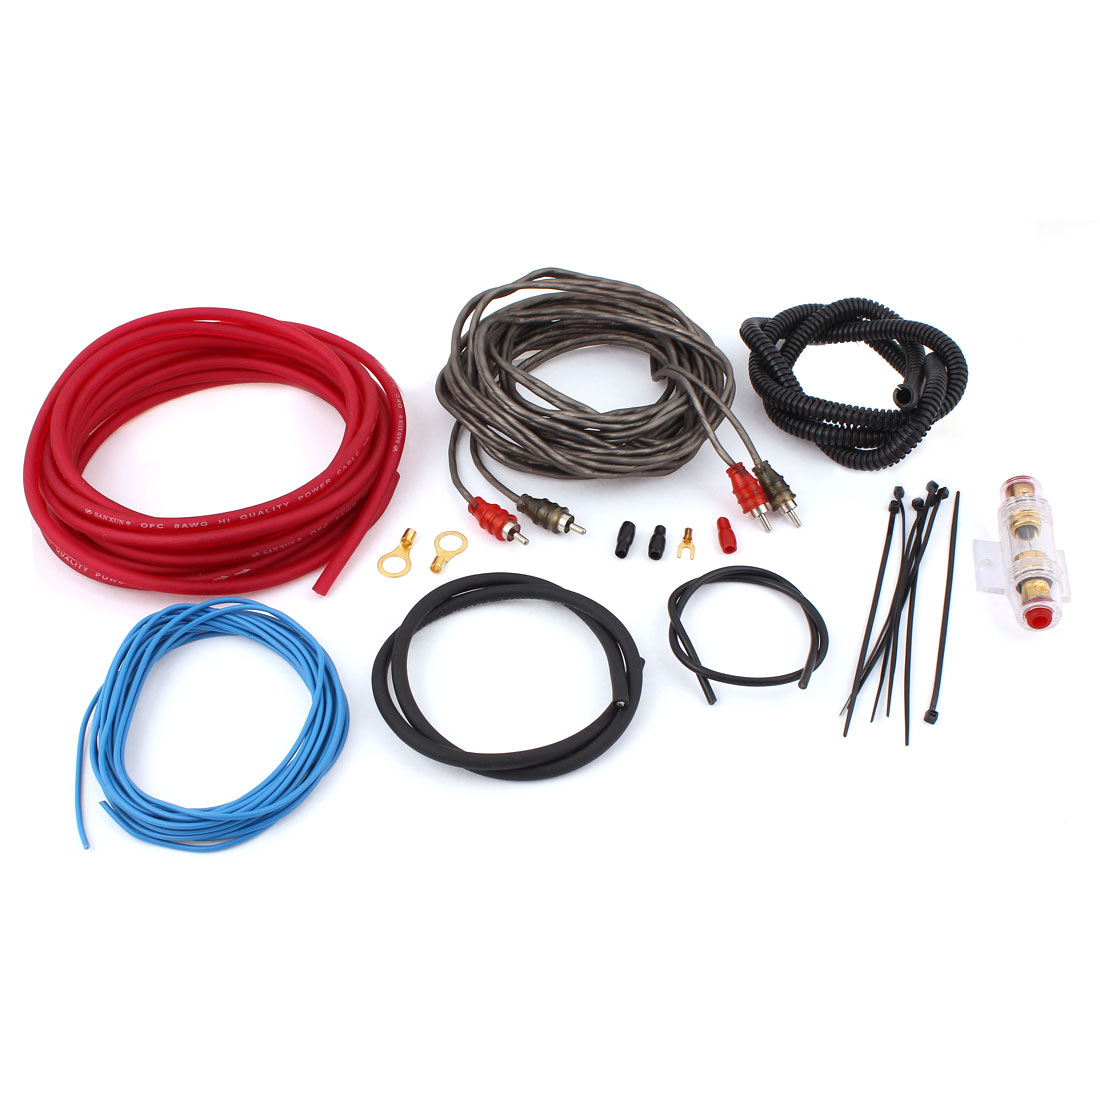 Auto Car Audio System Speaker Amplifier RCA Wiring Cable Wire Kit